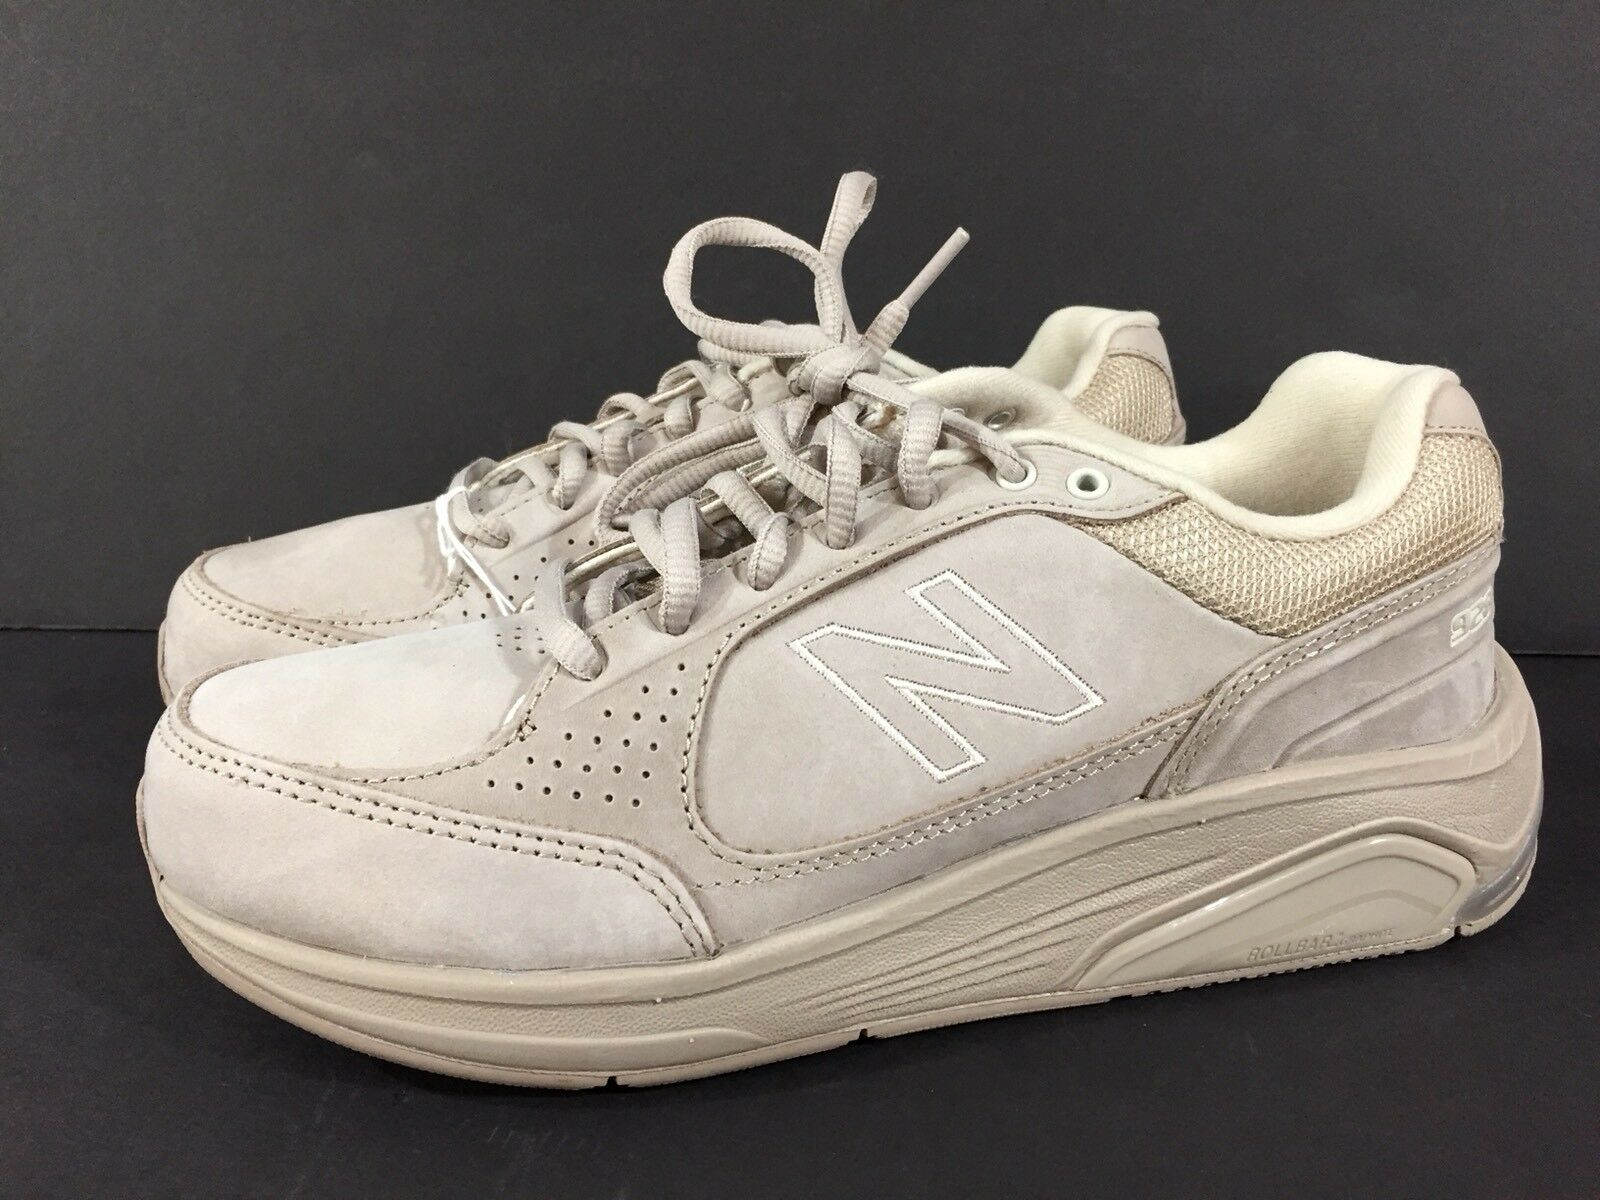 Womens NEW BALANCE 928 Walking Shoes Tan Suede Leather NEW US 7 B WW928TN NEW Leather w/TAGS 4eb577